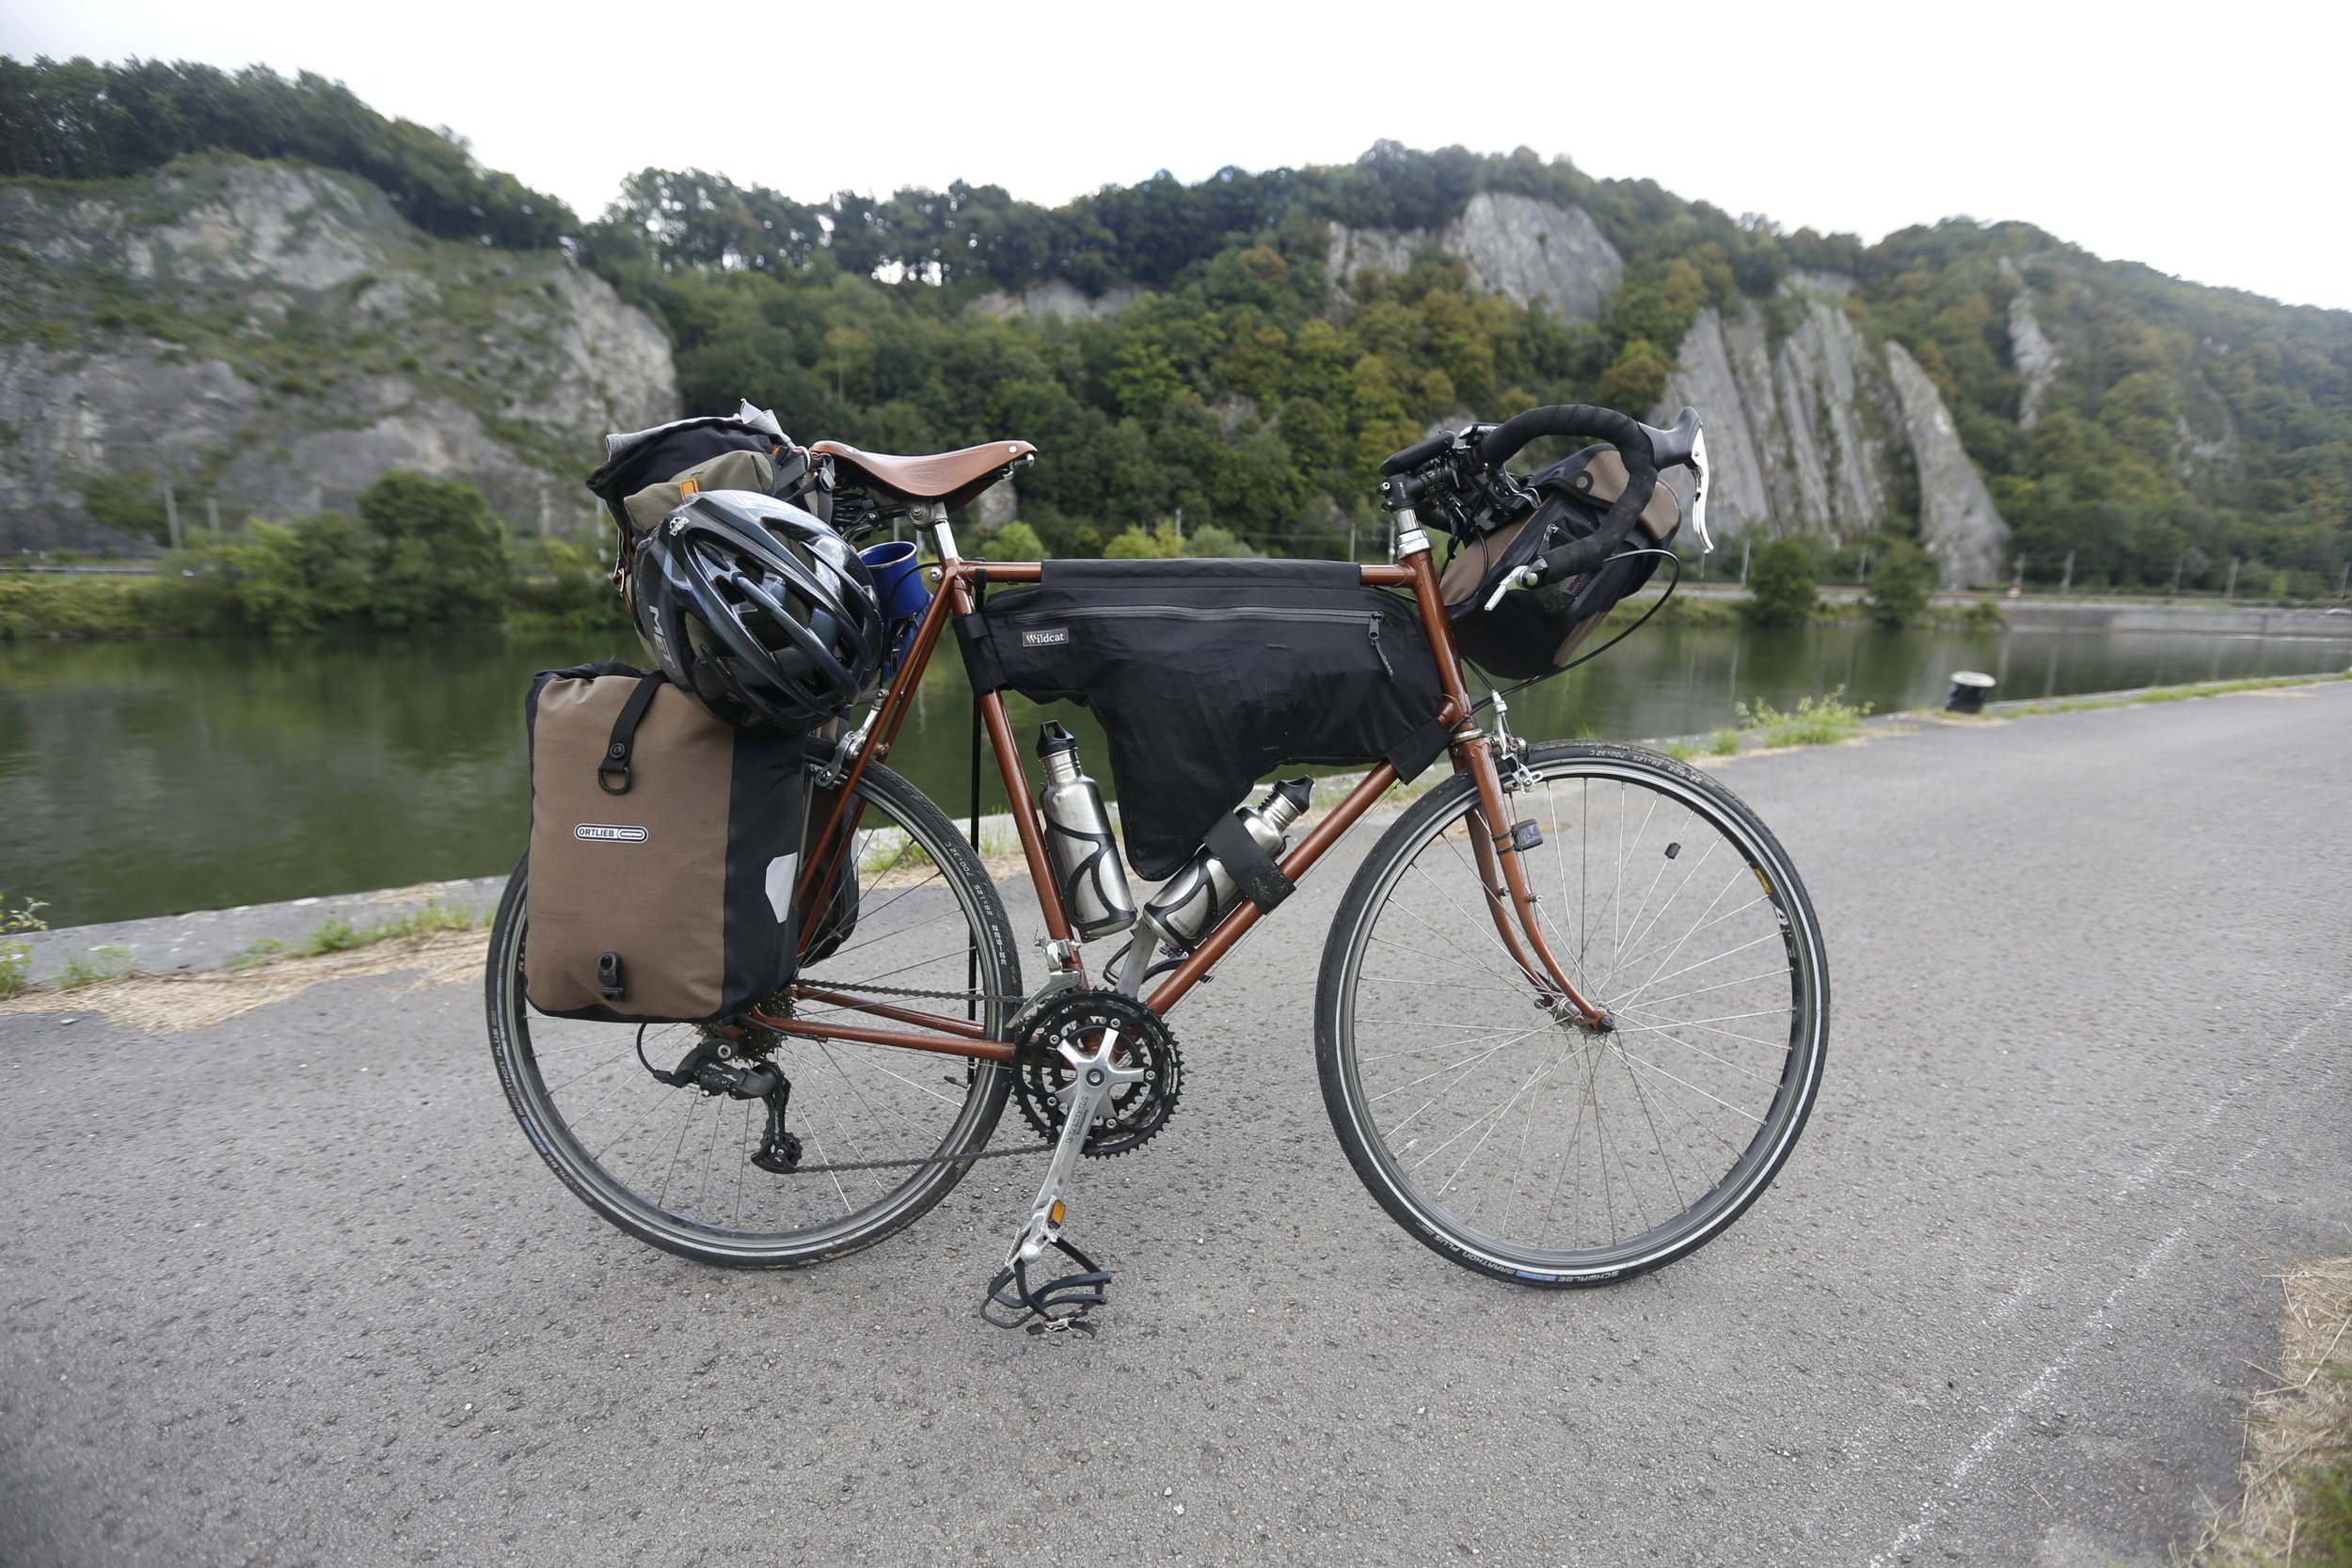 A closer look at my touring a rig, a 1970's completely custom Raleigh Magnum. I'm gradually converting to a full bikepacking set-up.